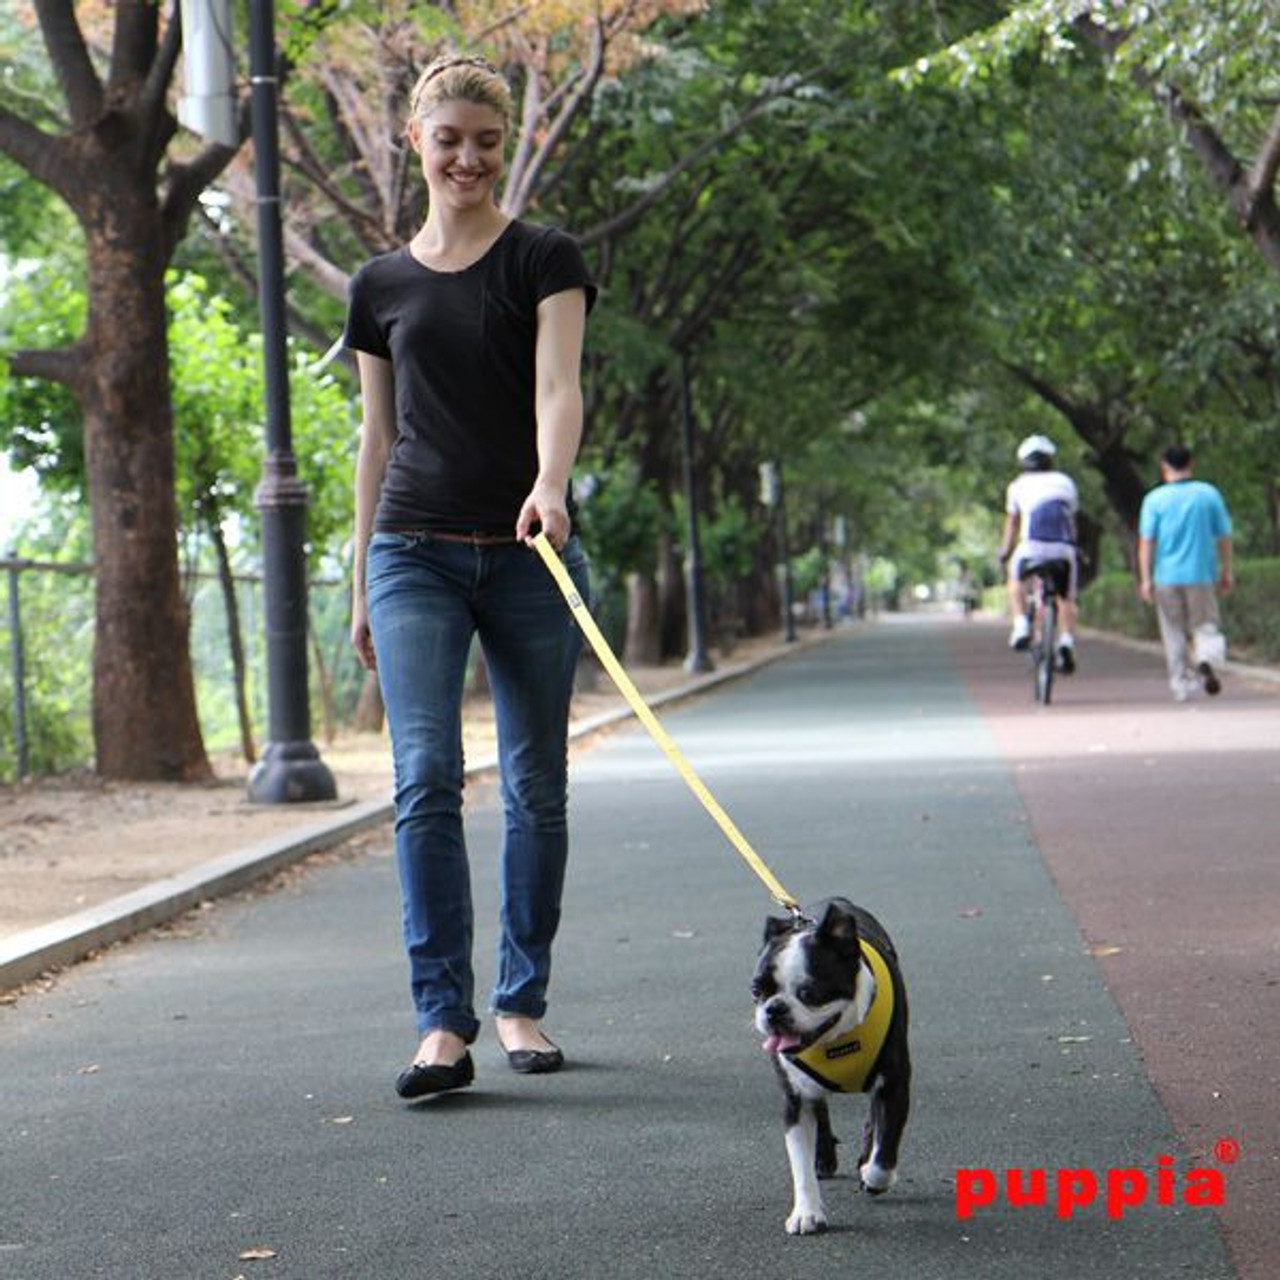 Puppia Soft Mesh Dog Harness - Buy 3 For $15.95 each